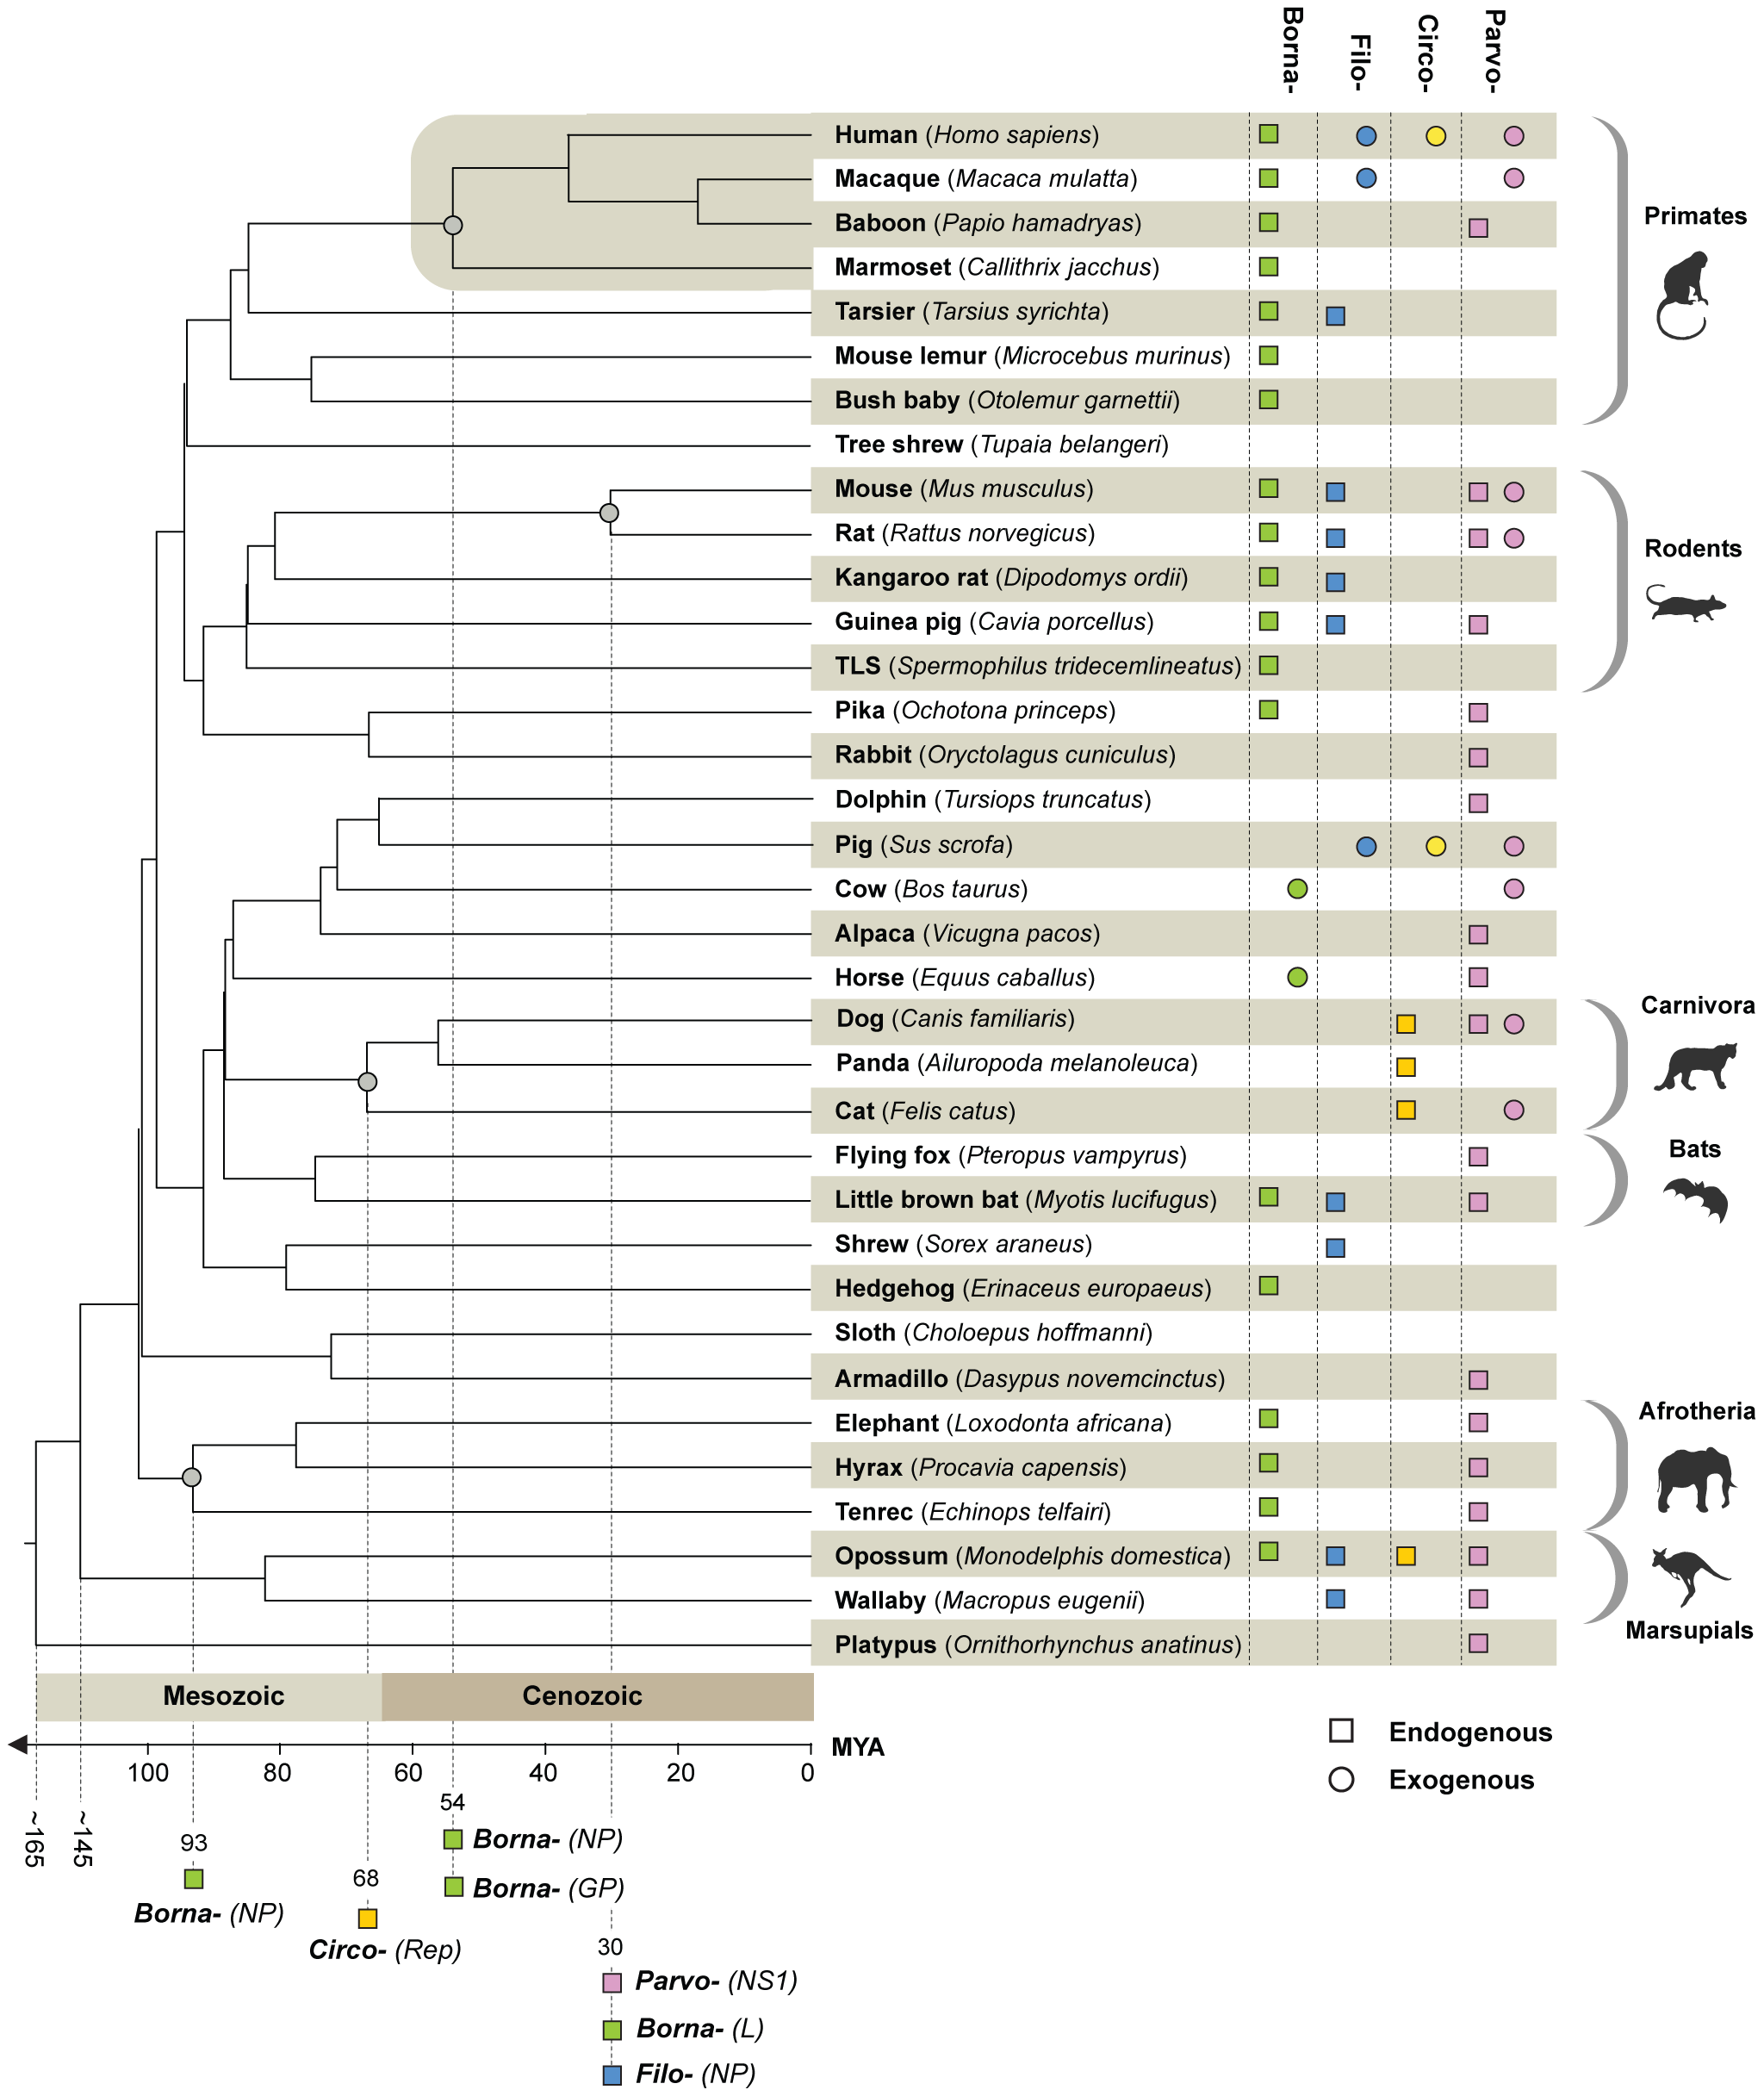 """Timescaled phylogenetic tree of mammals screened in this study (after Bininda-Emonds <i>et al</i> <em class=""""ref"""">[<b>42</b>]</em>) showing the known distribution of EVEs and of exogenous Borna-, Filo-, Circo-, and Parvoviruses."""